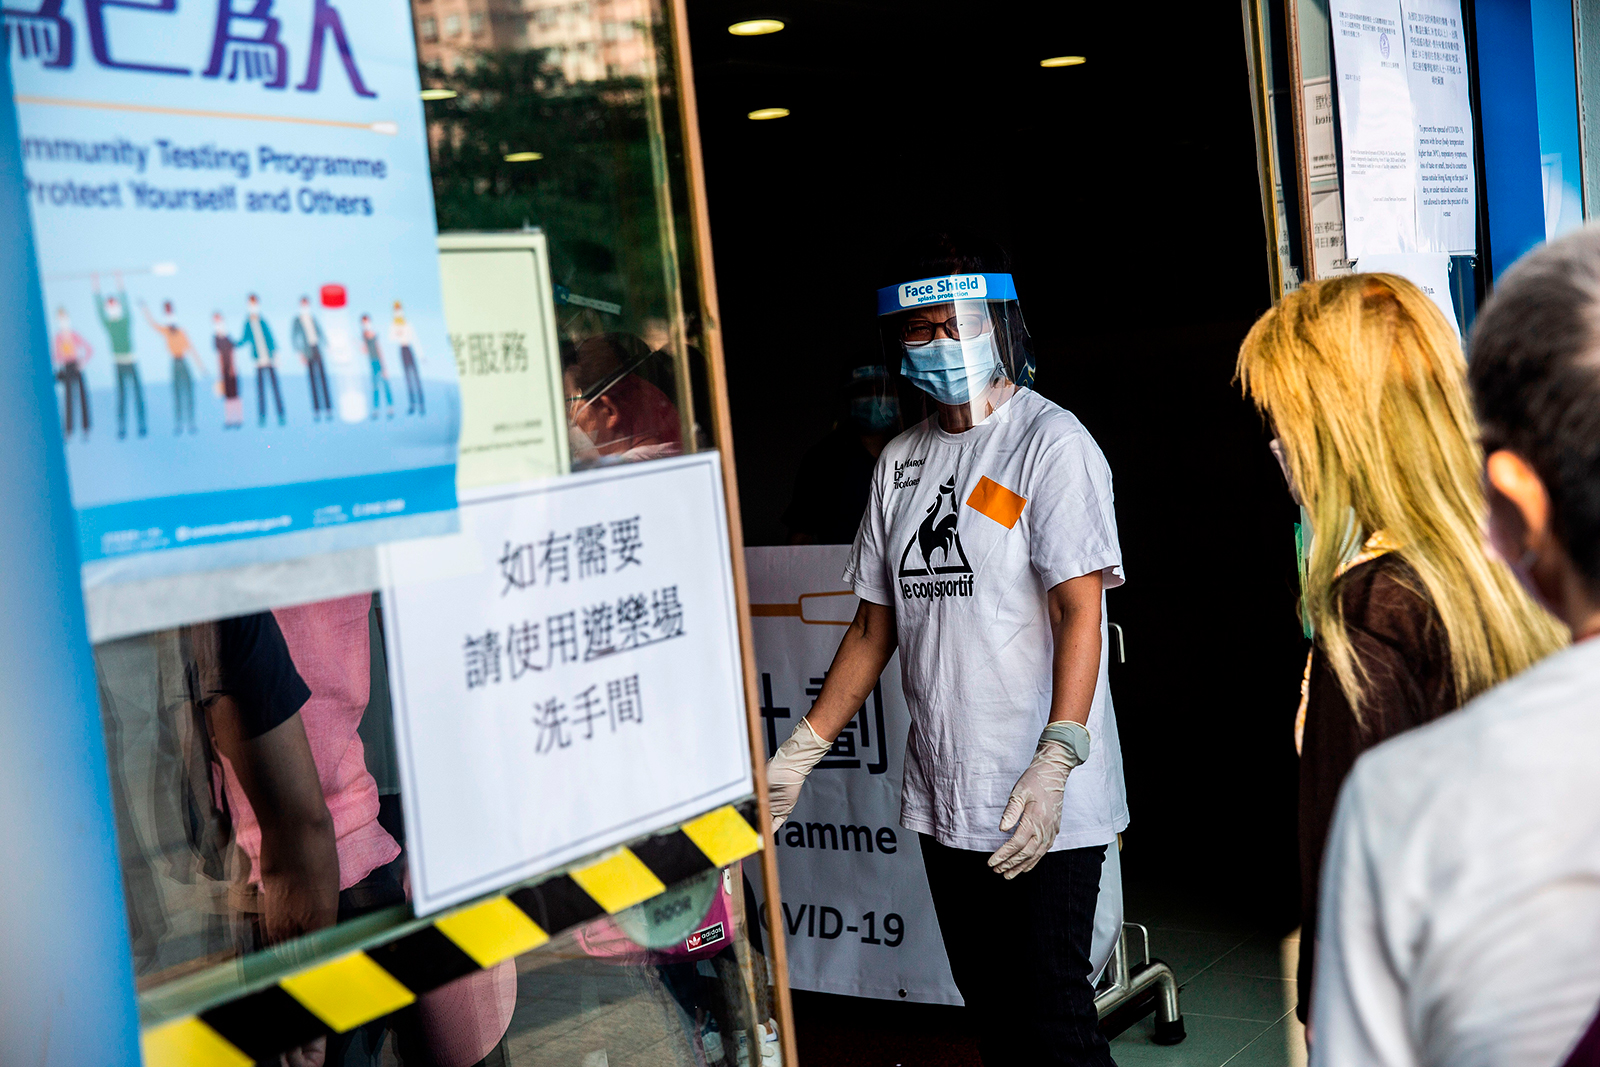 A staff member (left) gestures to people waiting in a queue at a Covid-19 coronavirus testing centre in Hong Kong, on September 1.